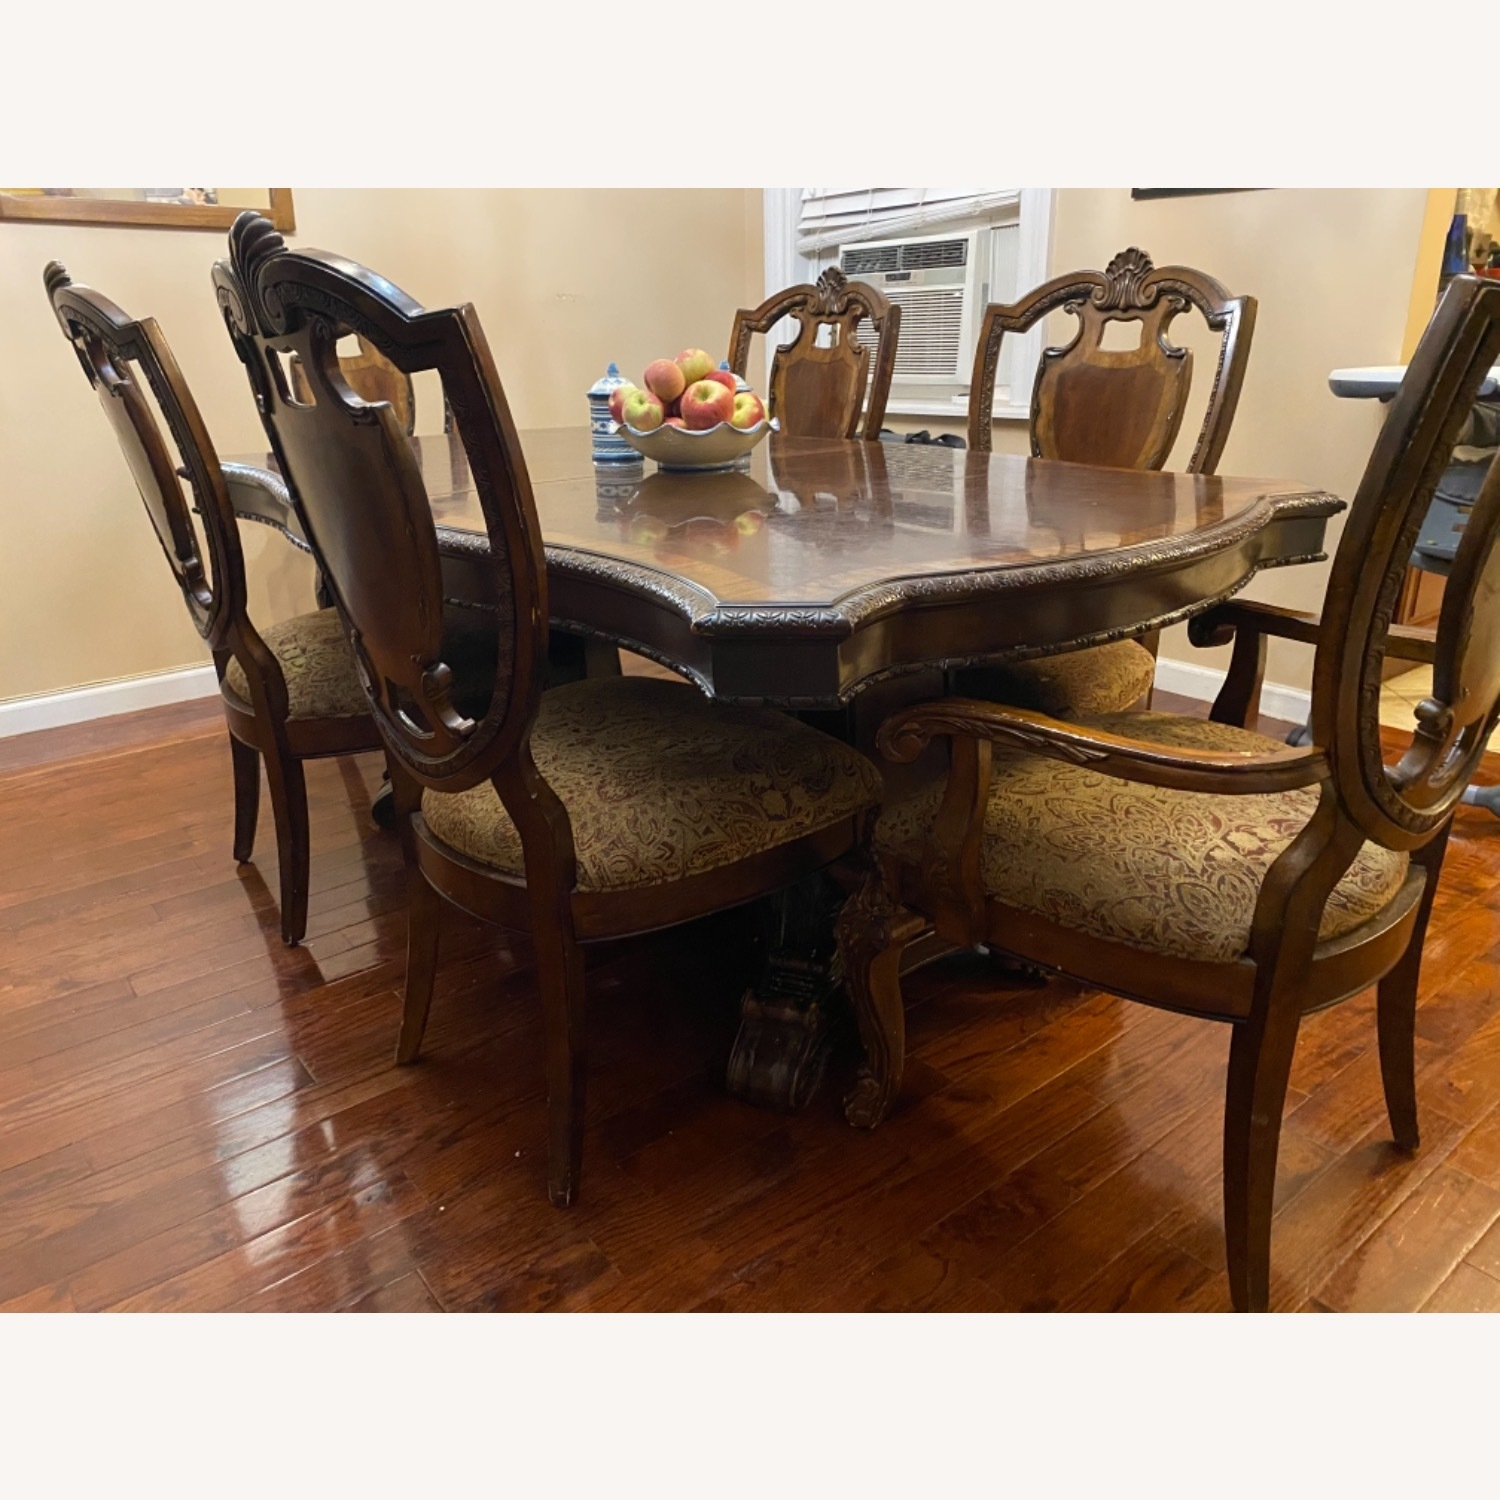 Wooden Dining Room Table Set of 9 Pieces - image-8